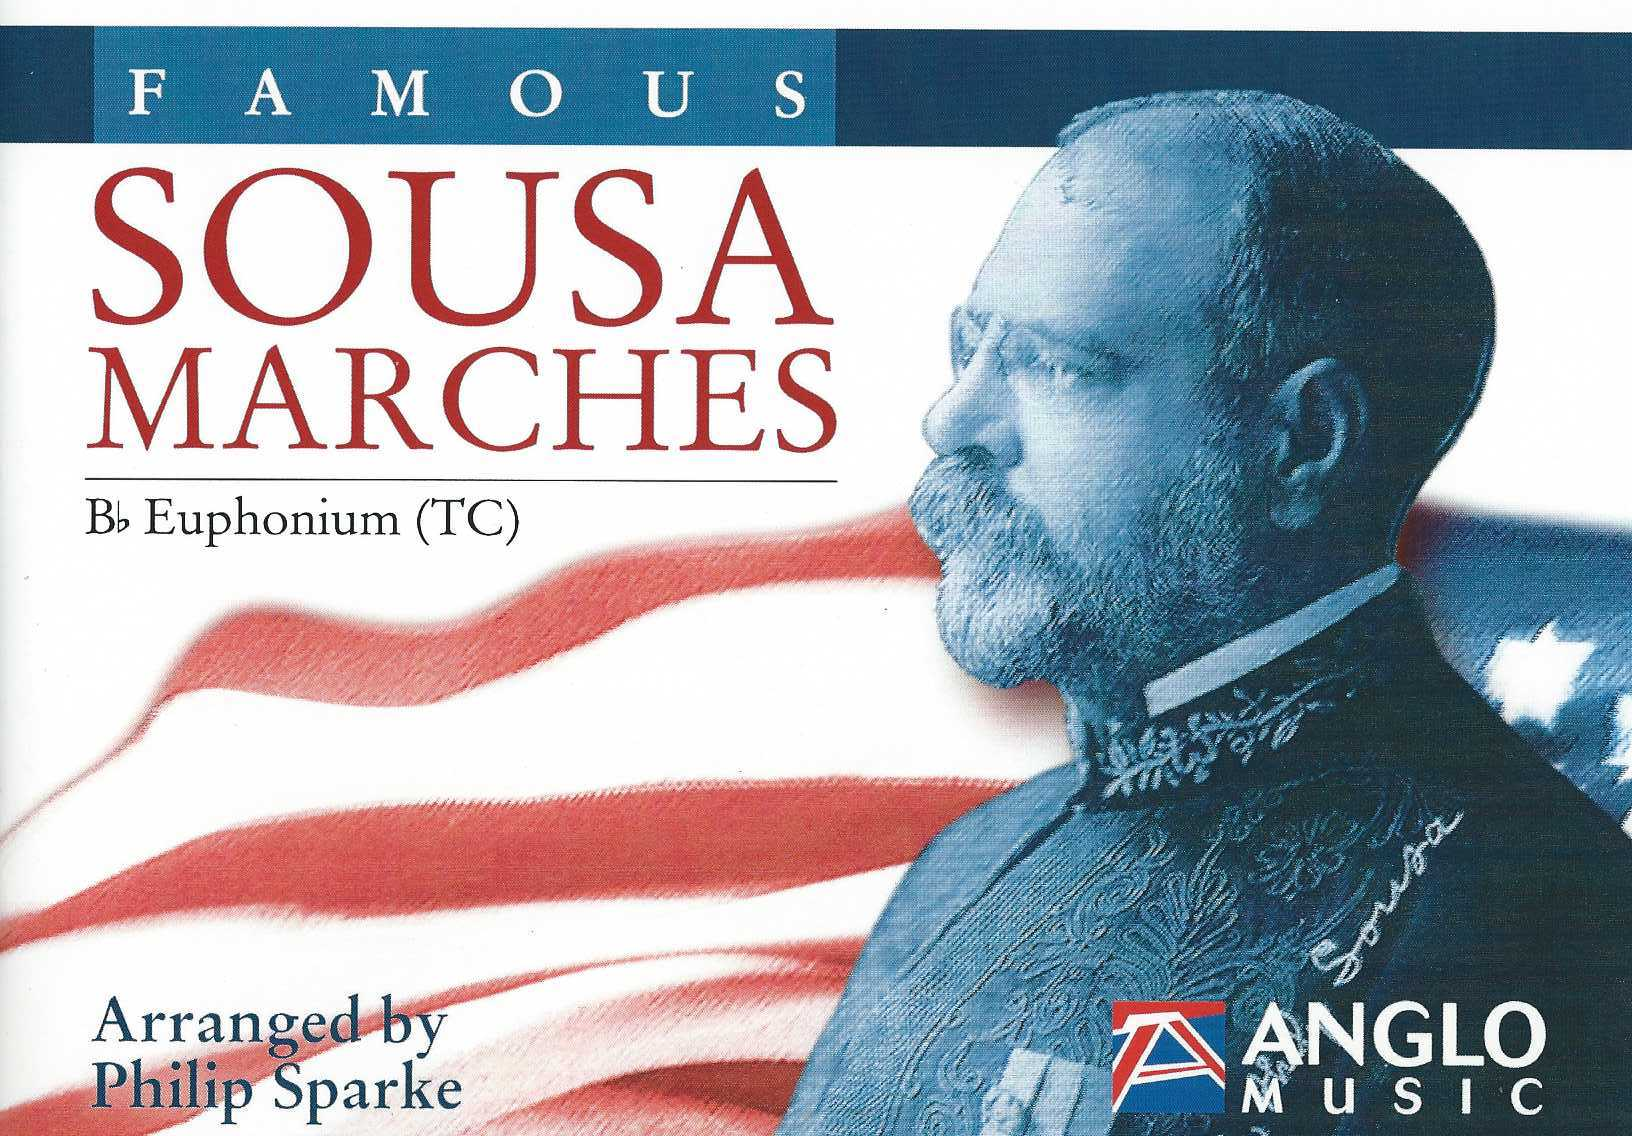 Famous Sousa Marches - Arranged by Philip Sparke (15 wind band euphonium parts)